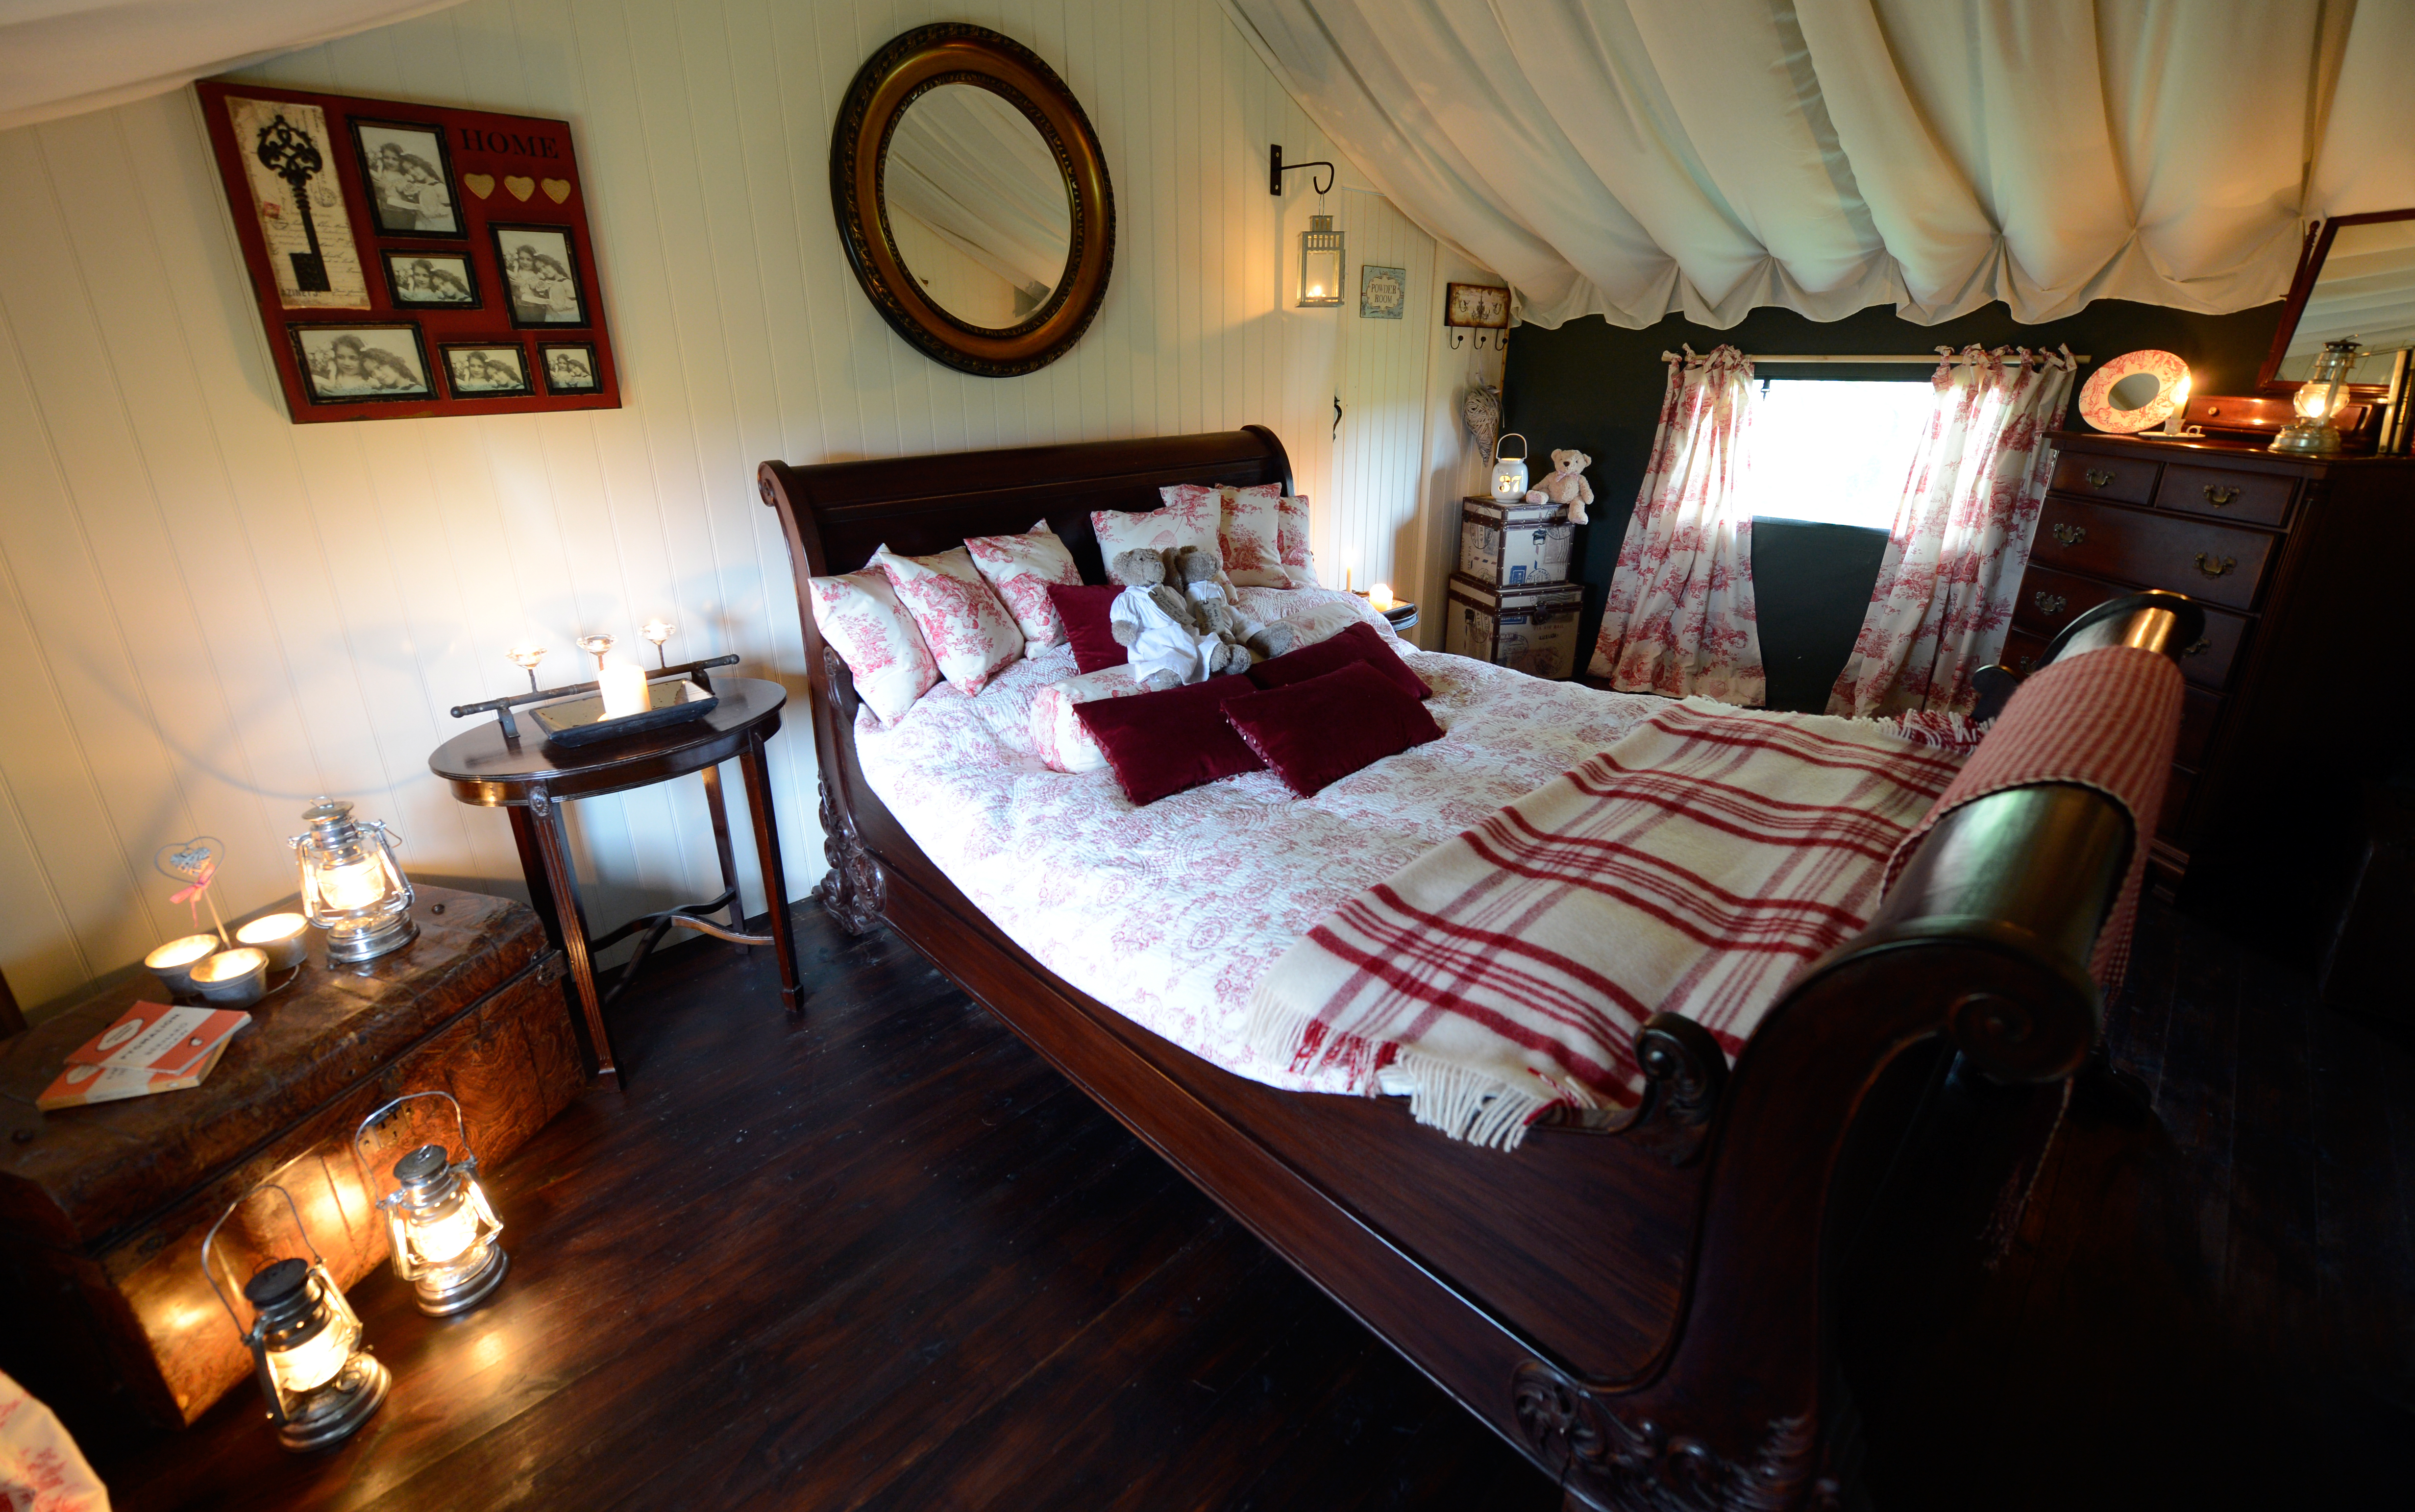 The bedroom at the Dandelion Hideaway showing the wooden bed